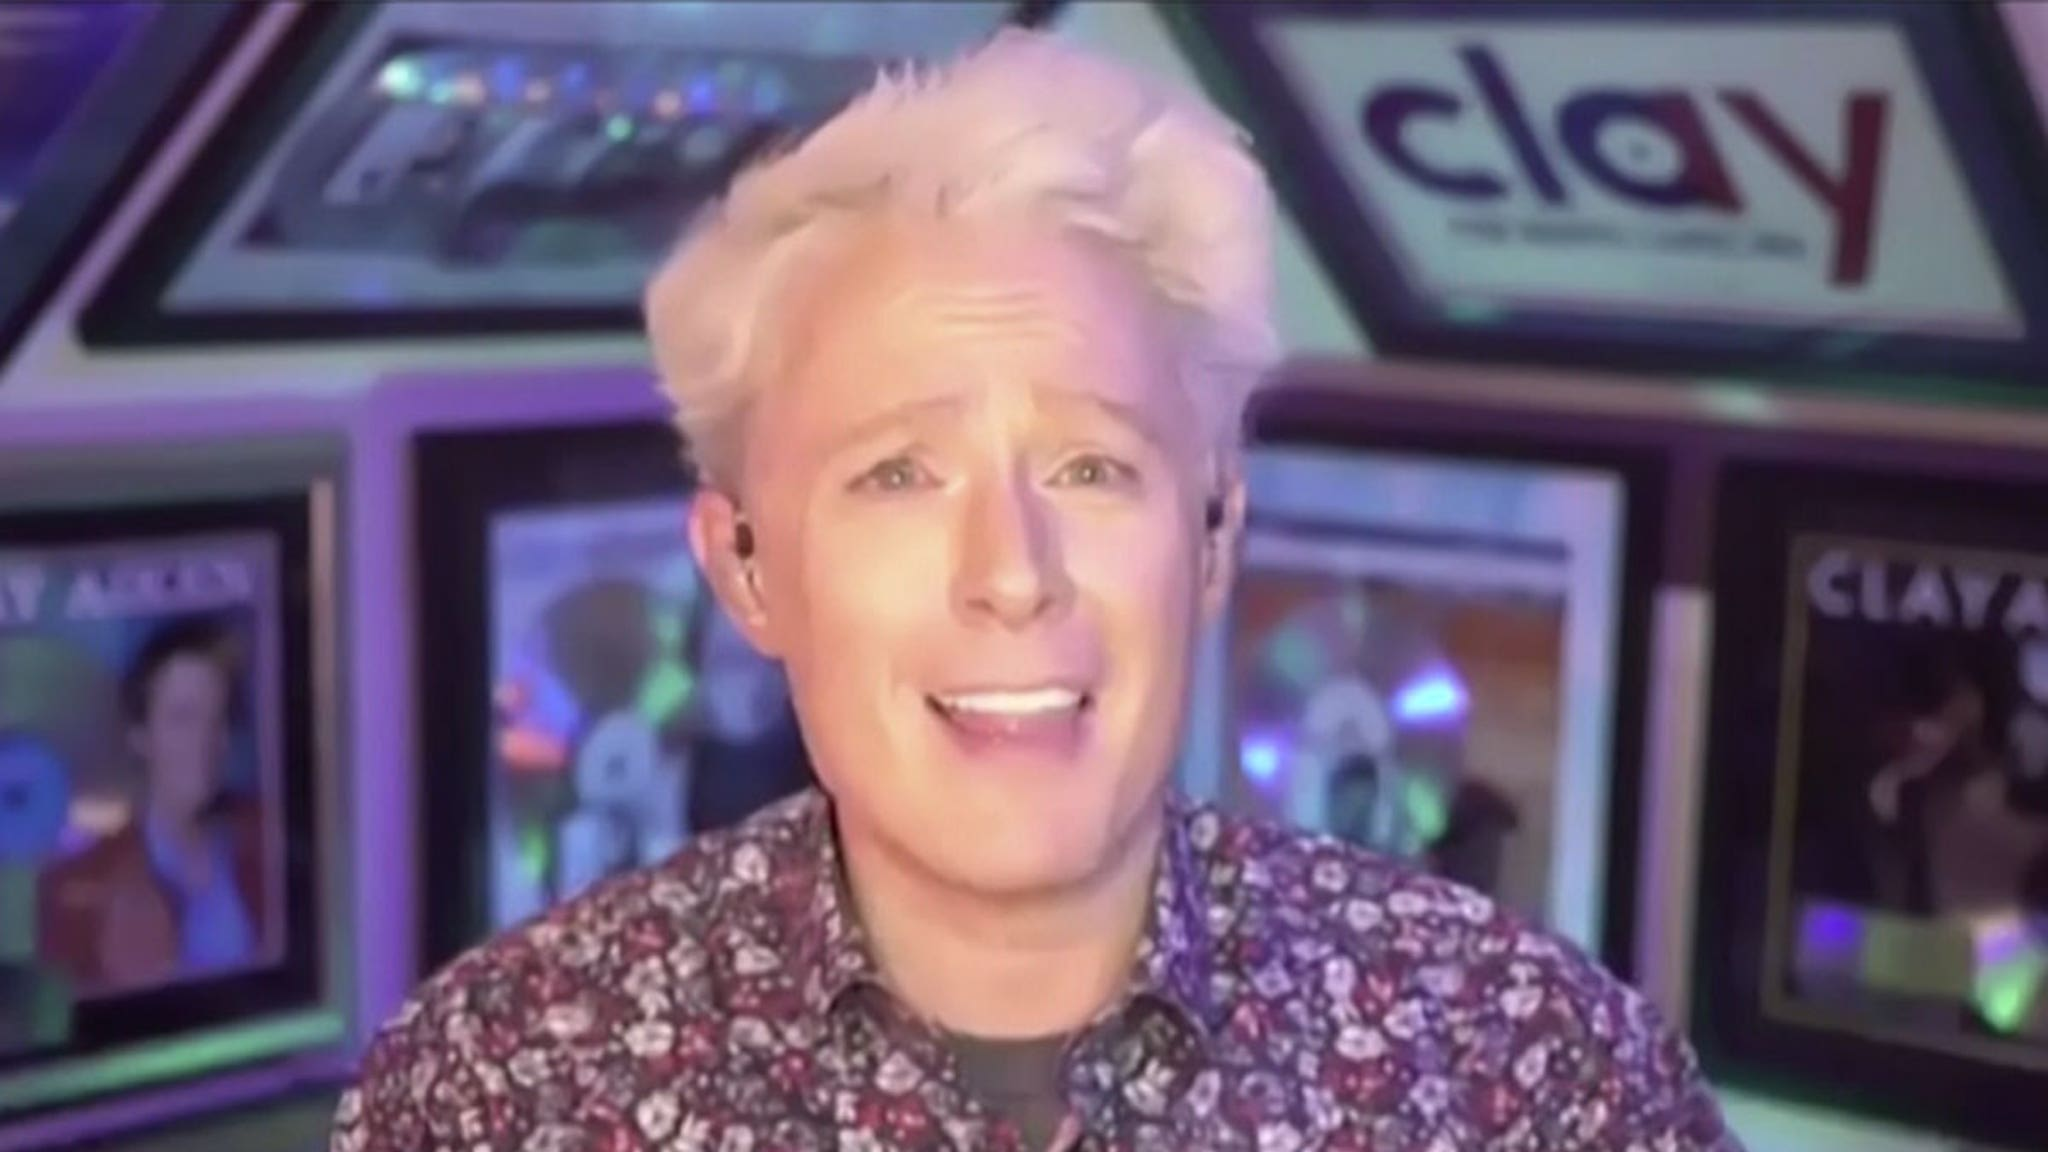 Clay Aiken Shares Cautionary Tale for The Rock, McConaughey About Politics thumbnail